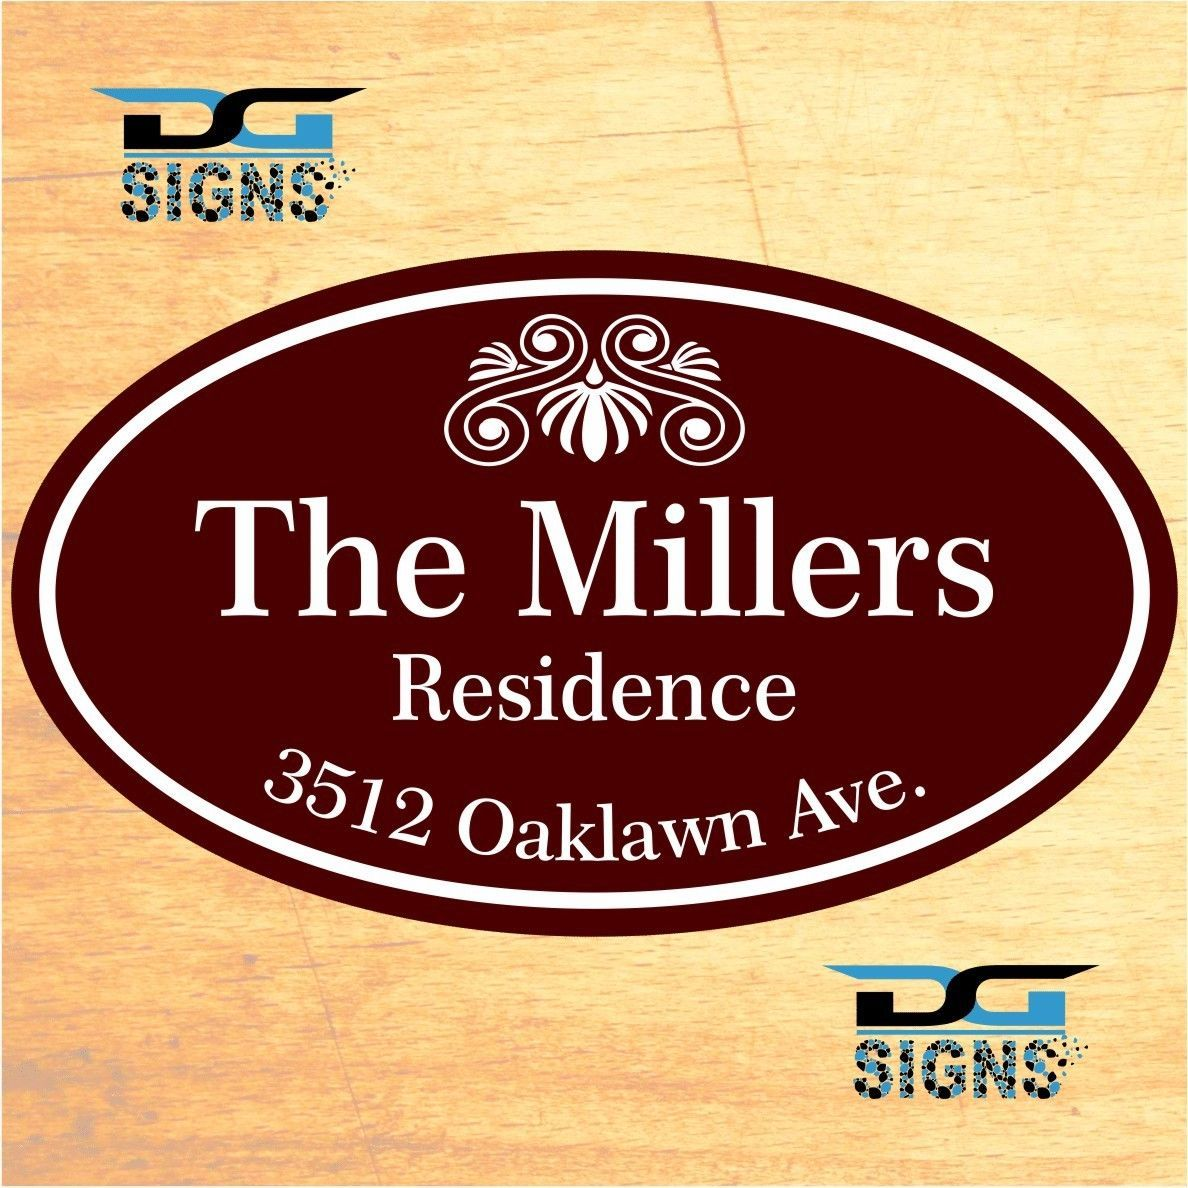 Decorative Signs For Your Home: 3011 Personalized Home Address Decorative Custom Plaque 12